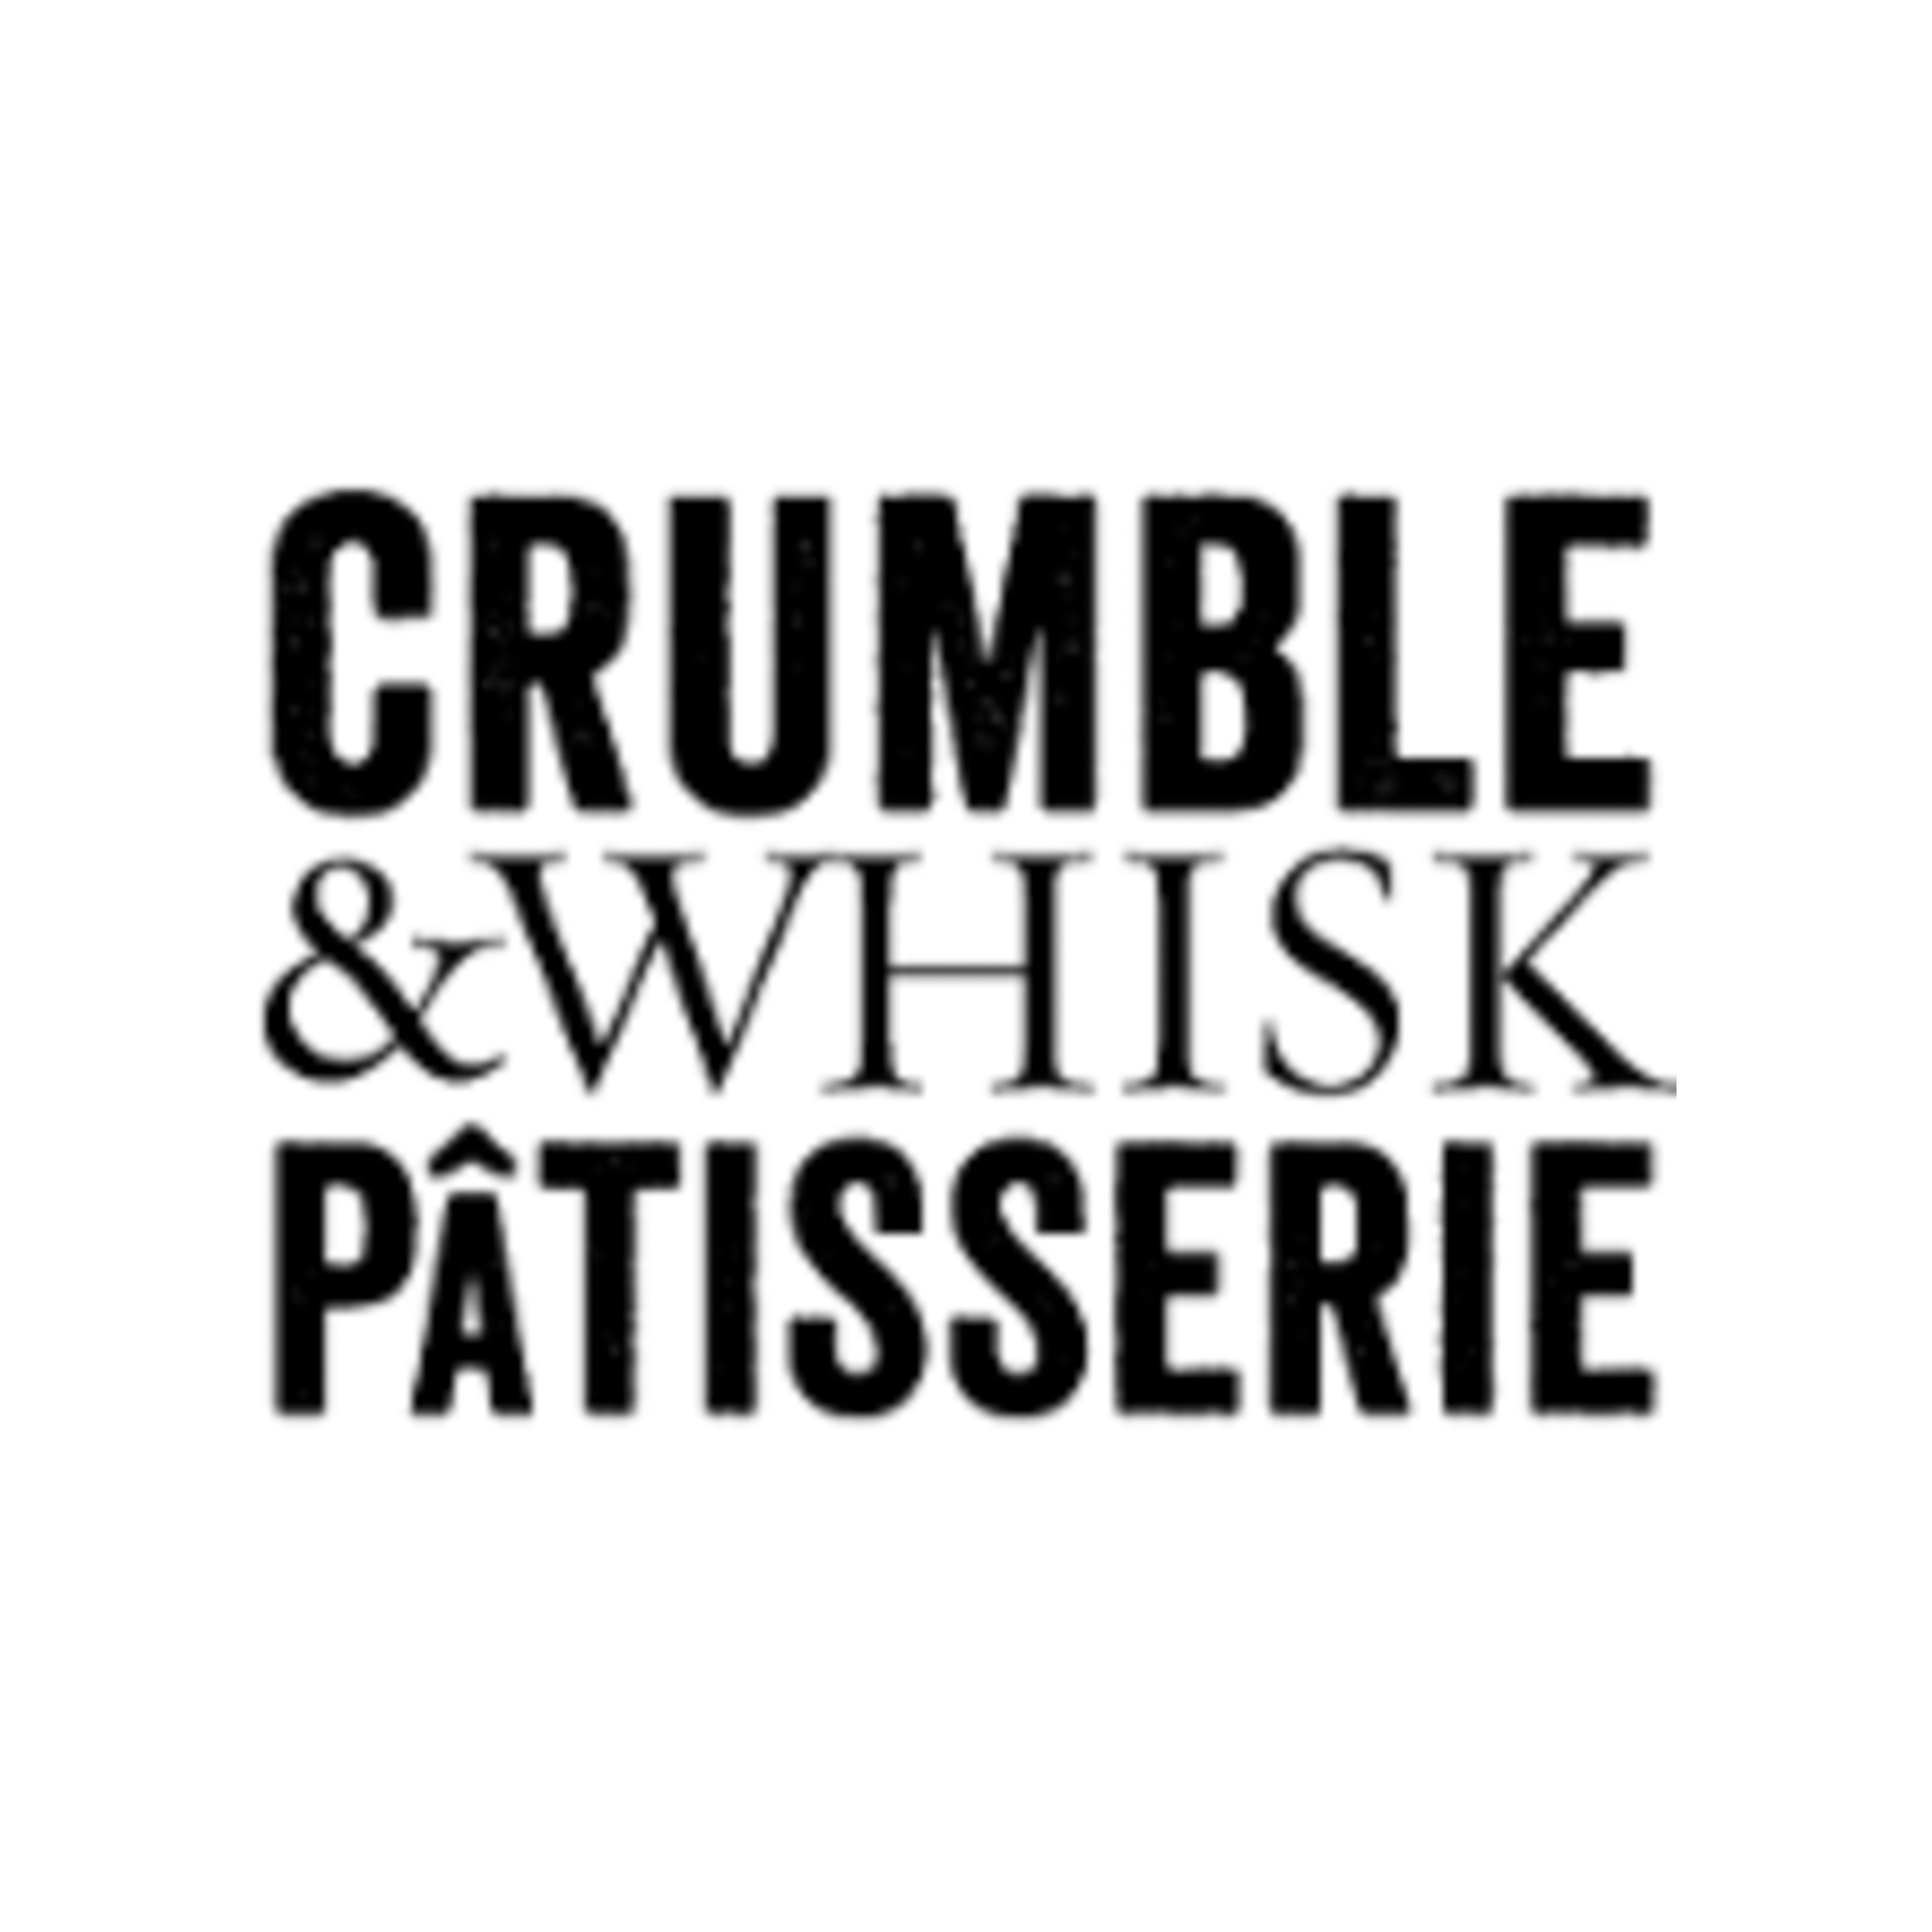 Crumble&Whisk